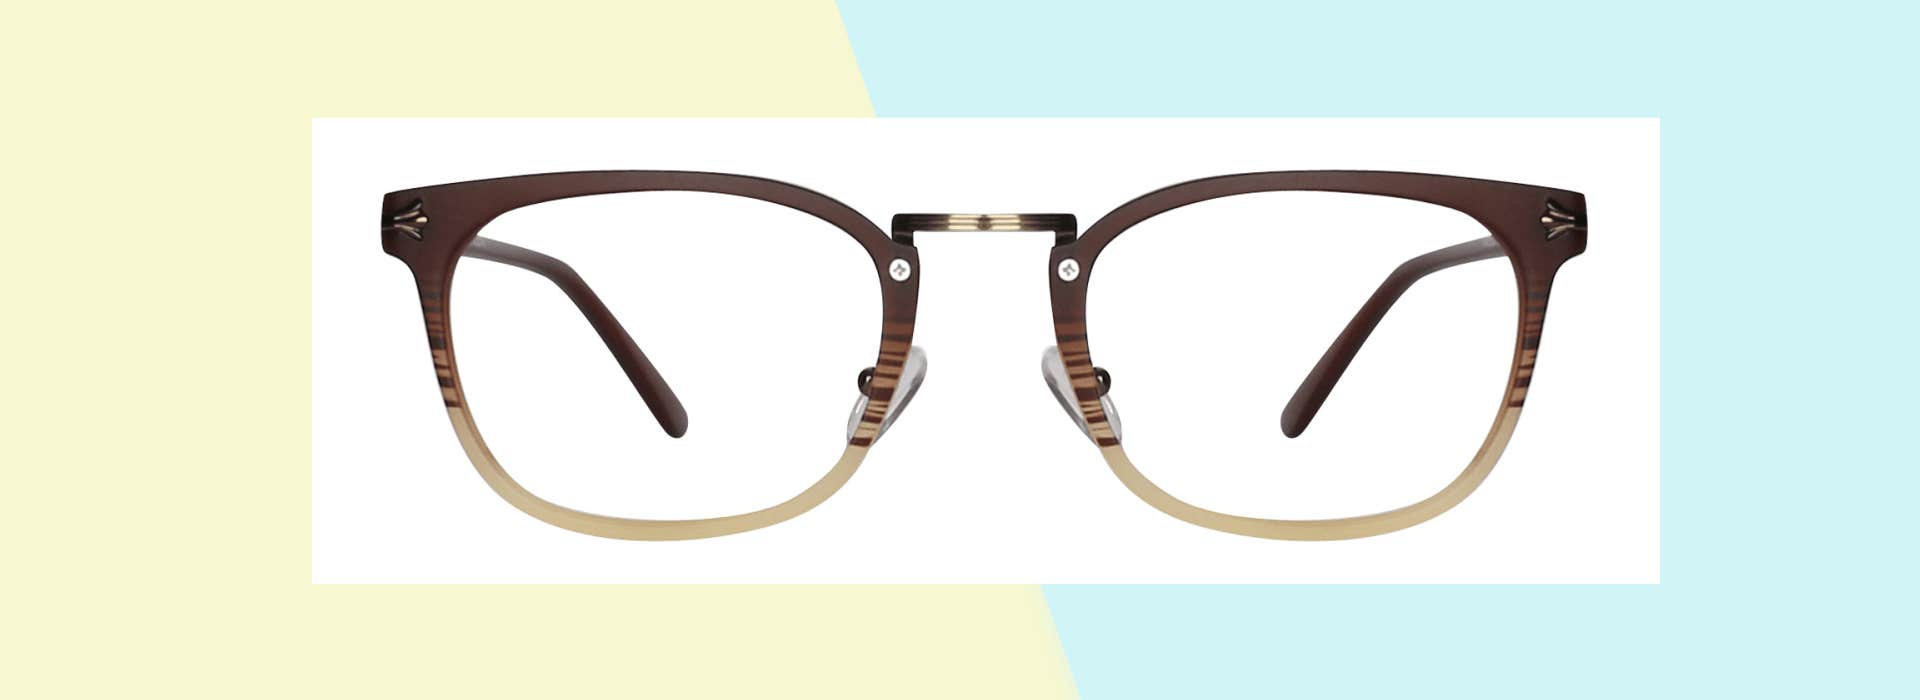 The Brown-Cream Eyeglasses